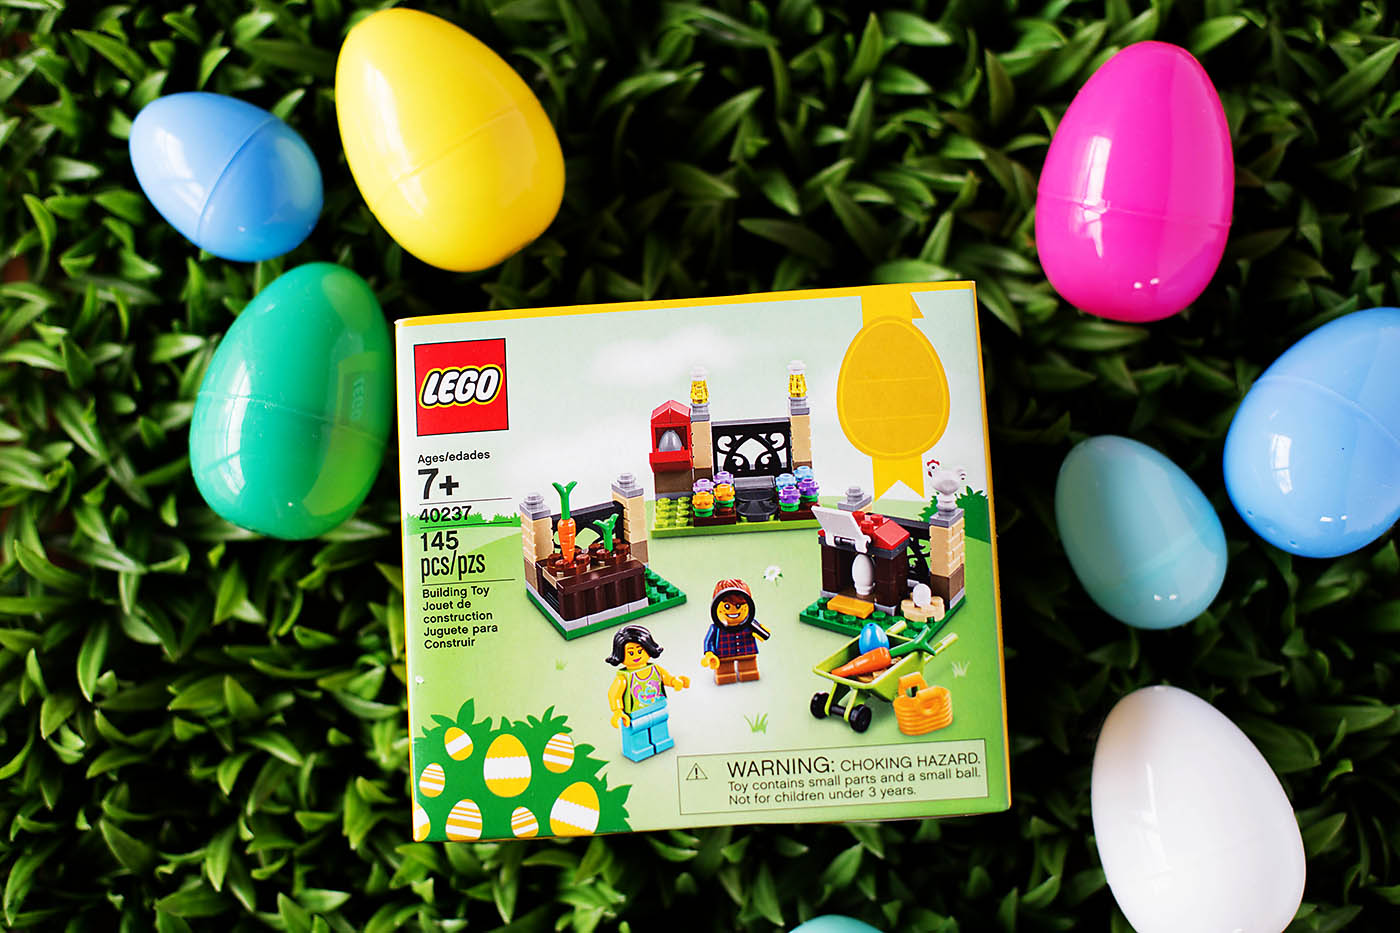 LEGO Easter Egg hunt idea